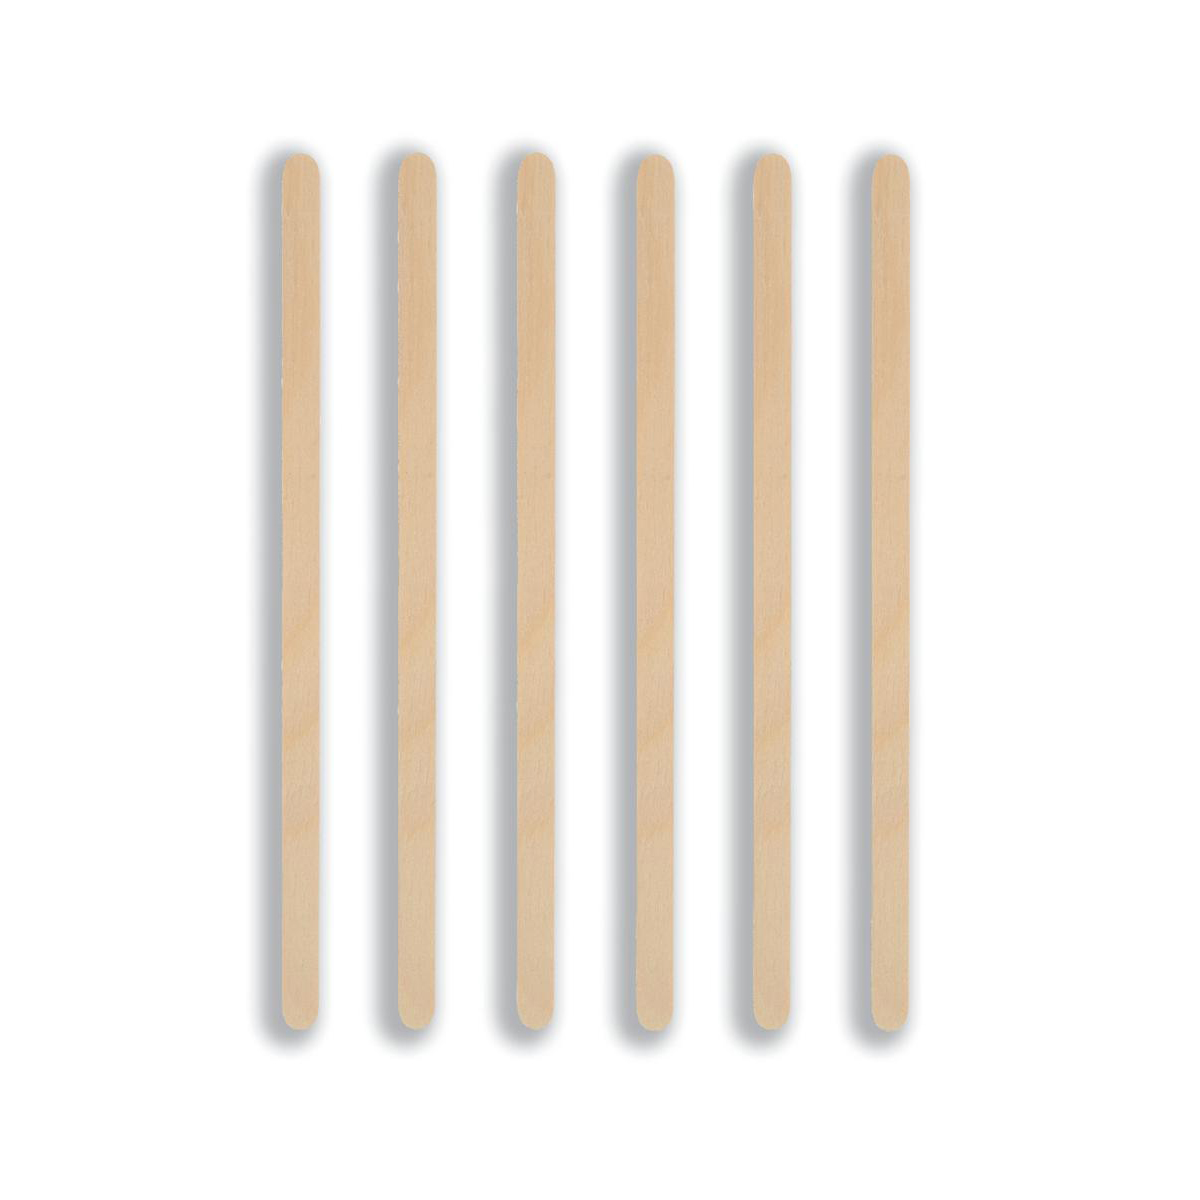 Drink Stirrers Wooden 140mm Ref E03157 [Pack 1000]